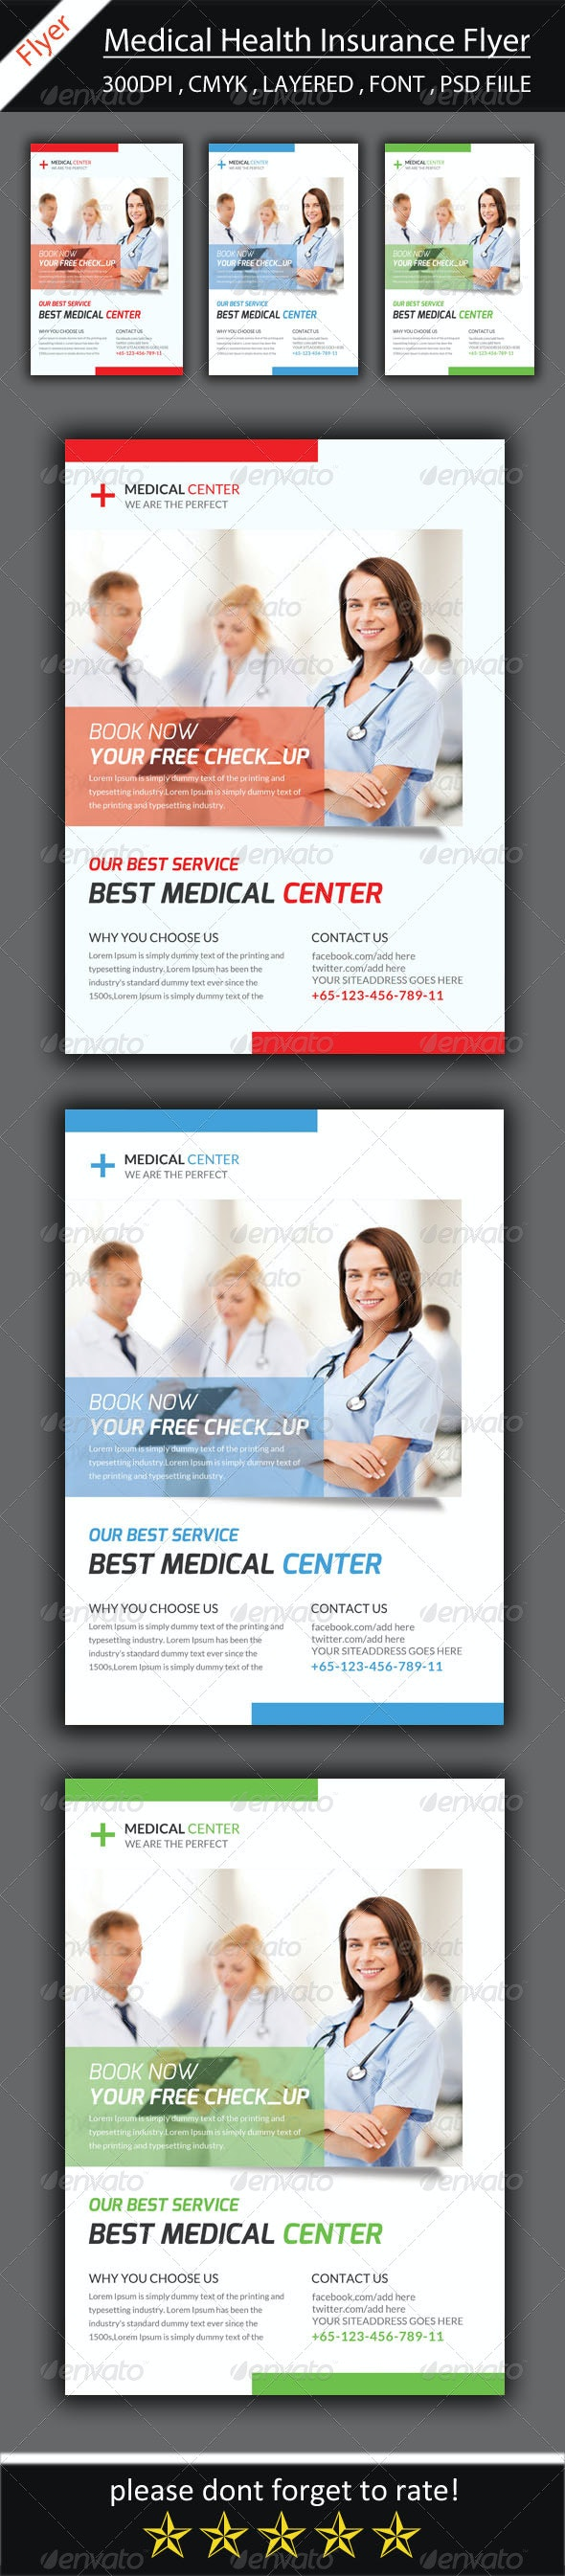 Medical Insurance Flyer Template - Corporate Flyers